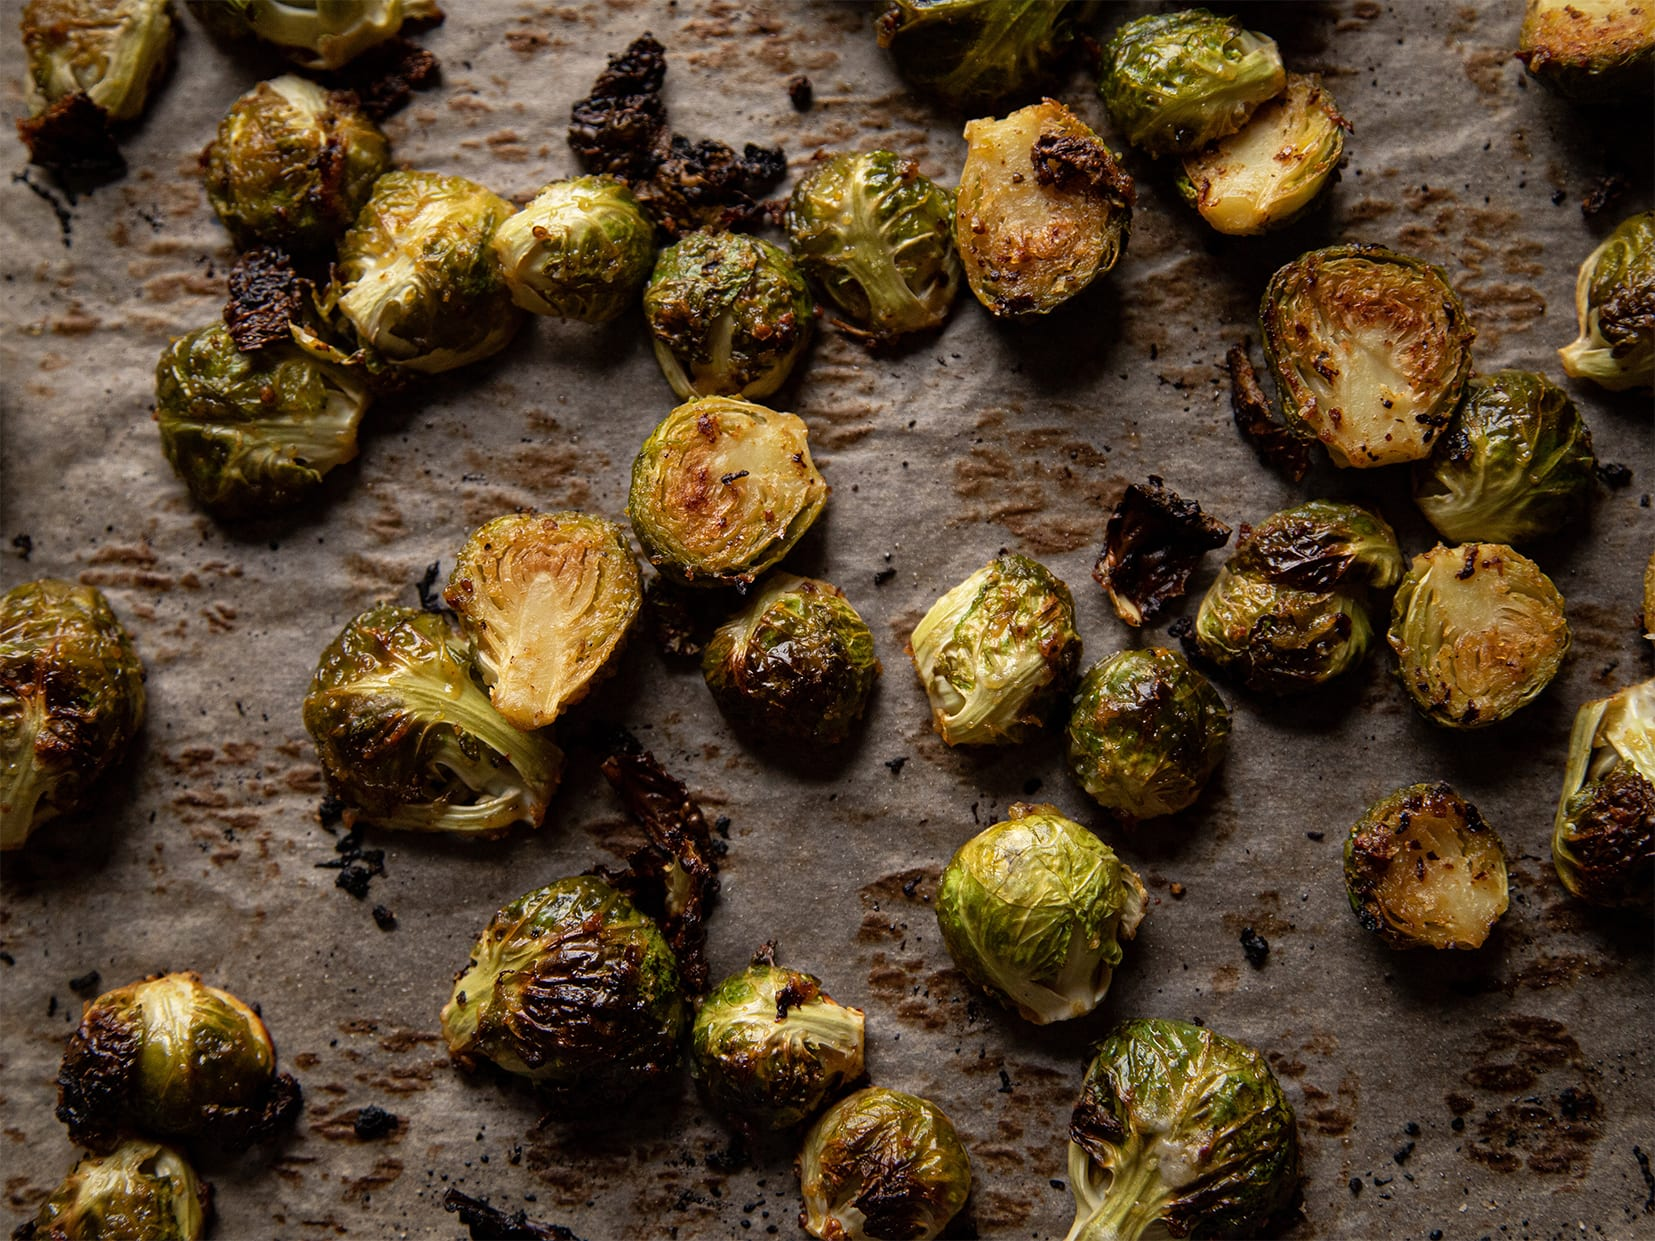 A tray of roasted Brussels sprouts, up close with moody lighting.